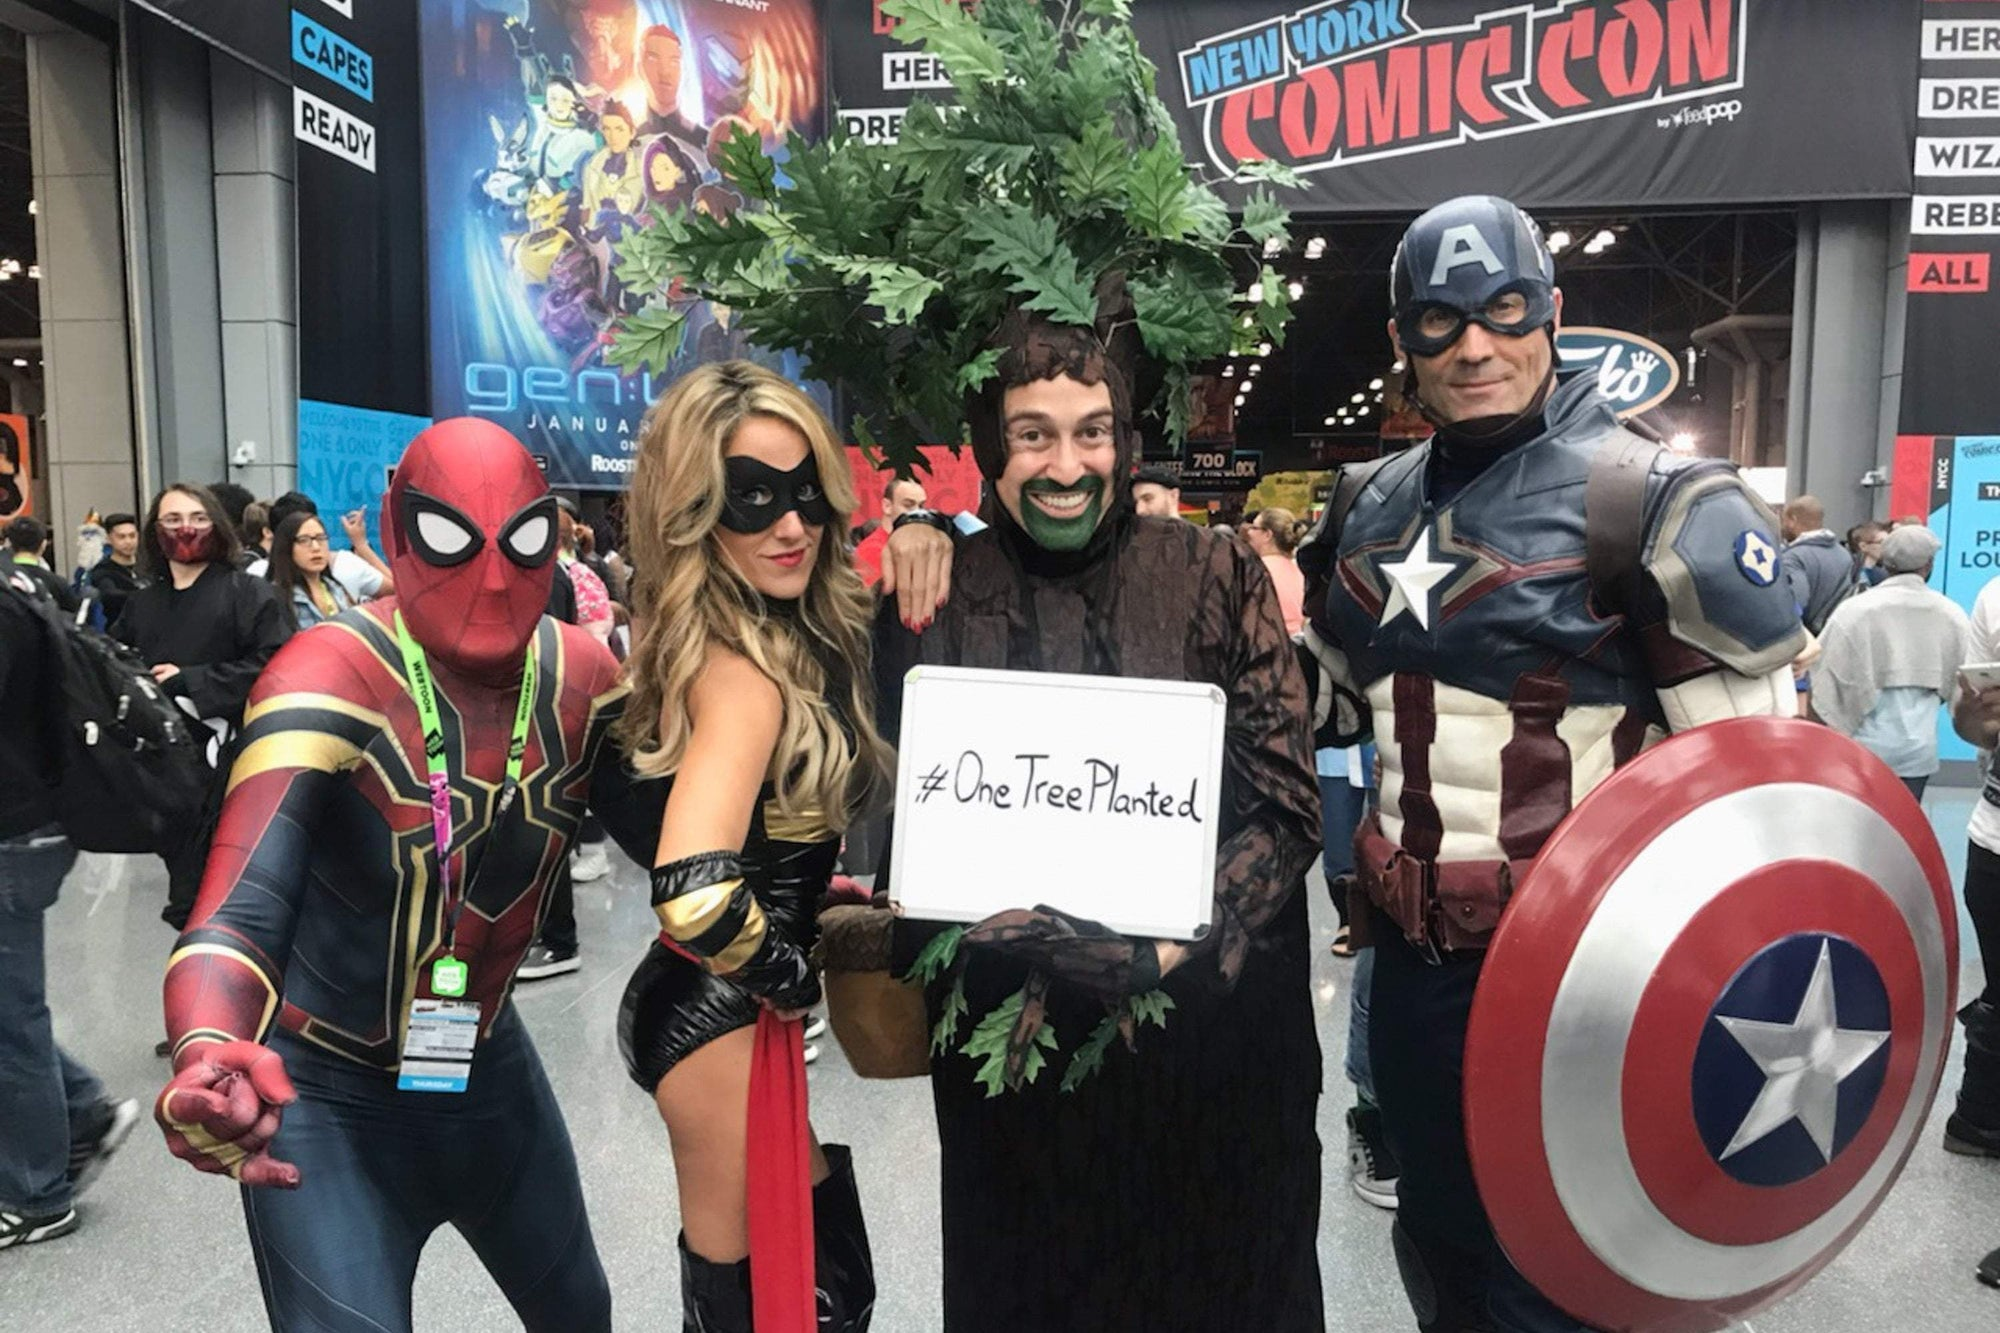 The Tree Goes to Comic Con